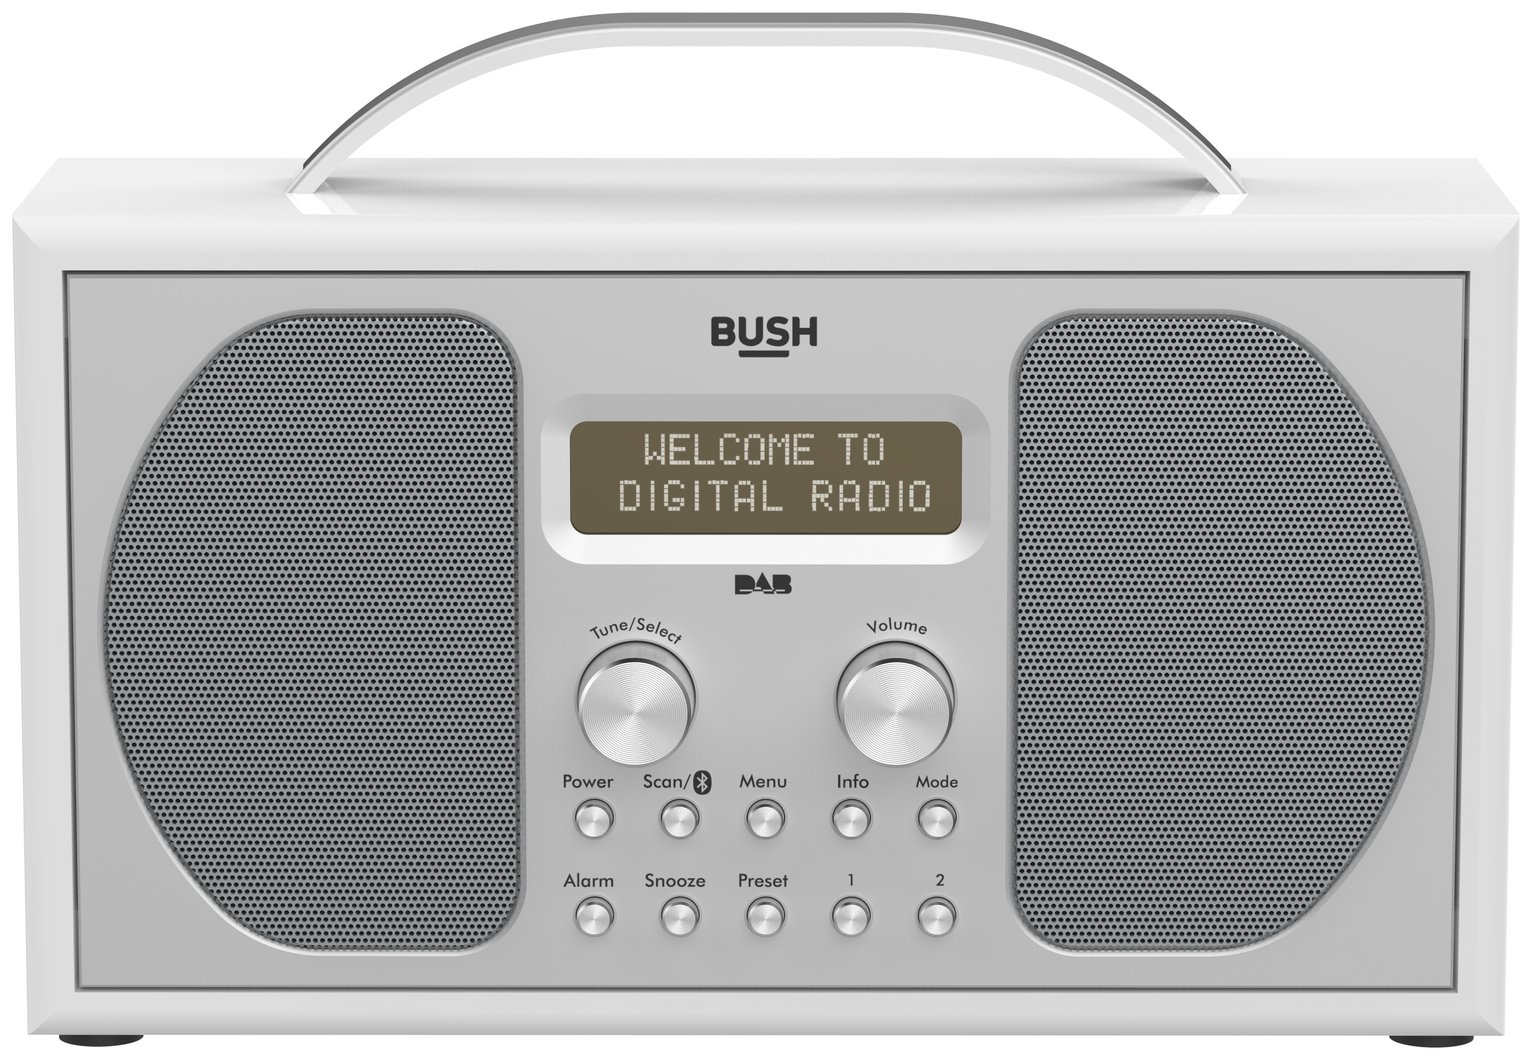 Bush Stereo DAB Radio - Piano Gloss White